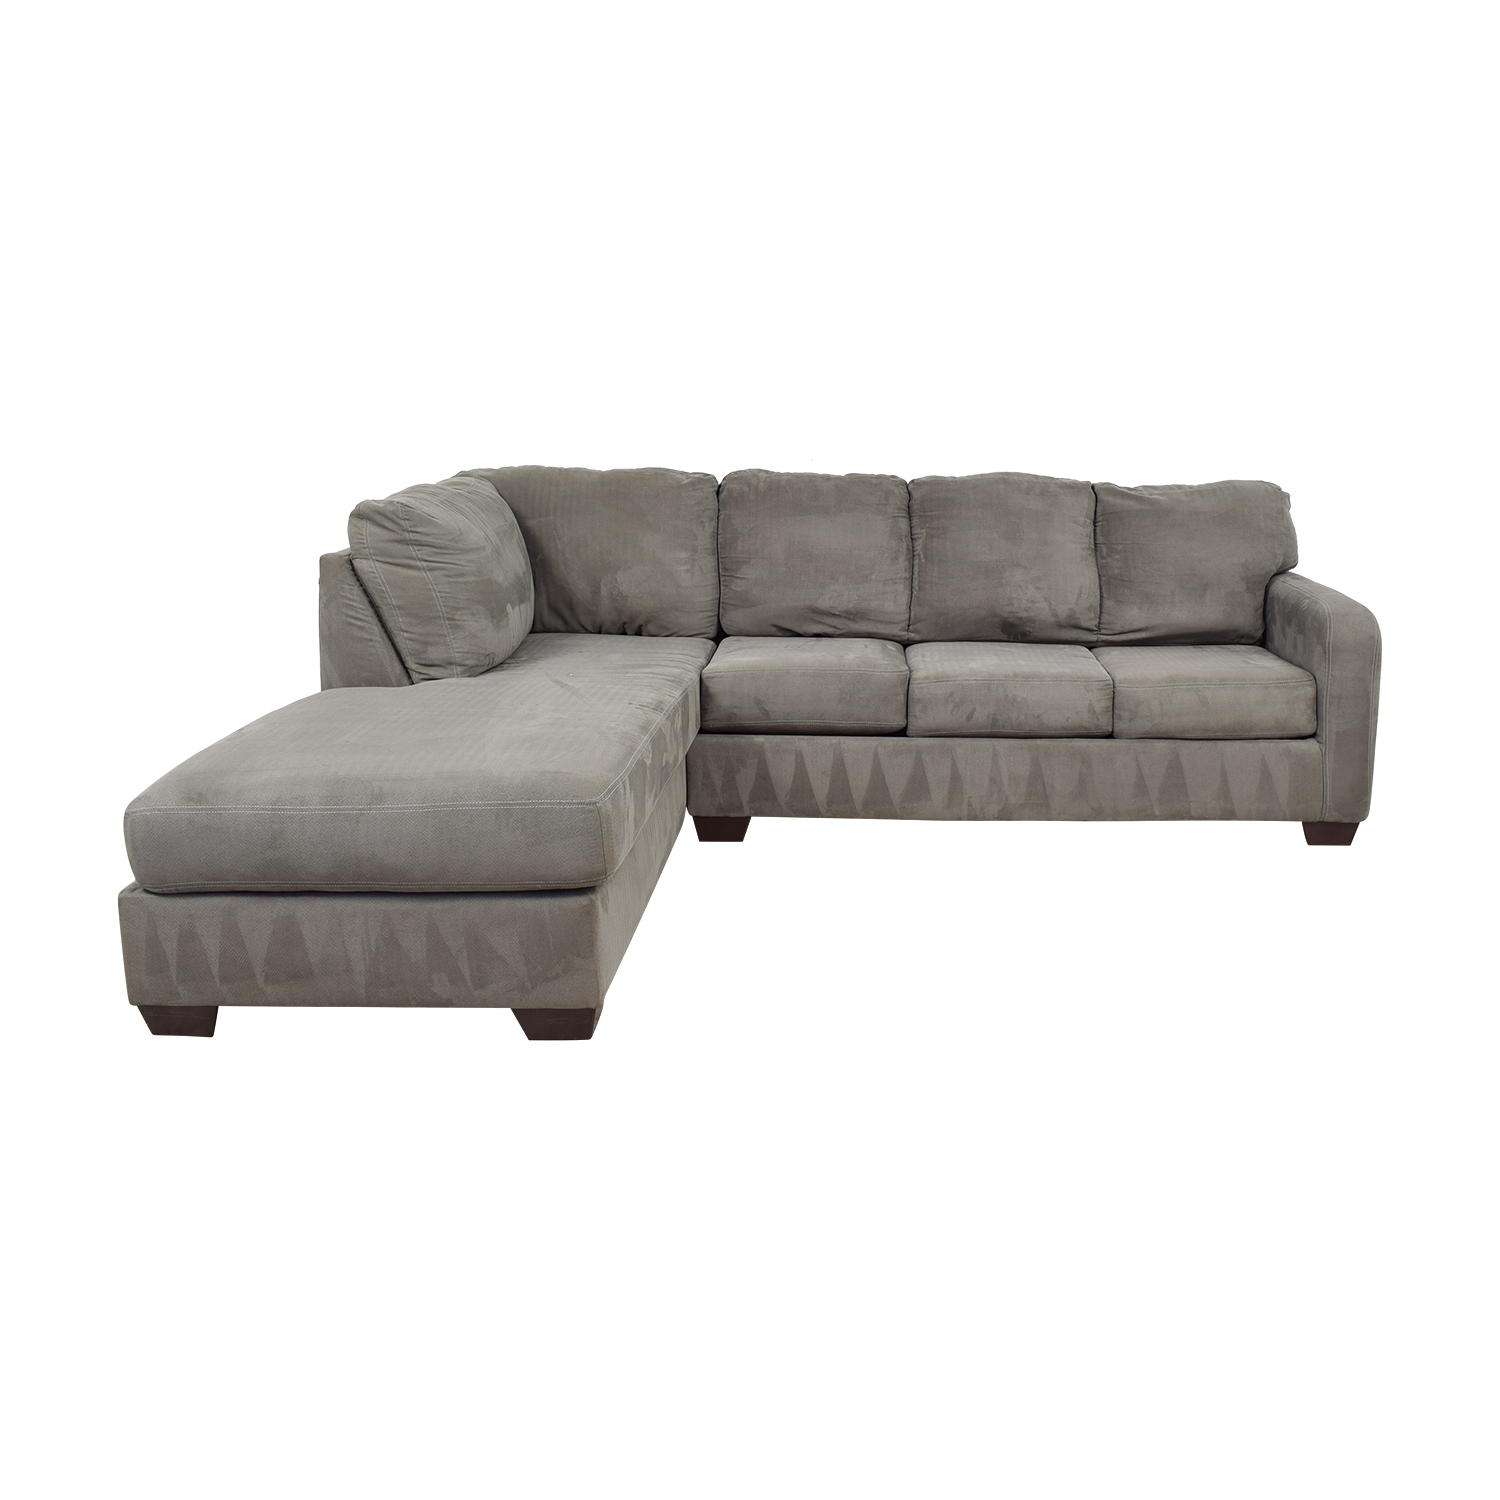 Ashley Furniture Ashley Furniture Grey Chaise Sectional nj